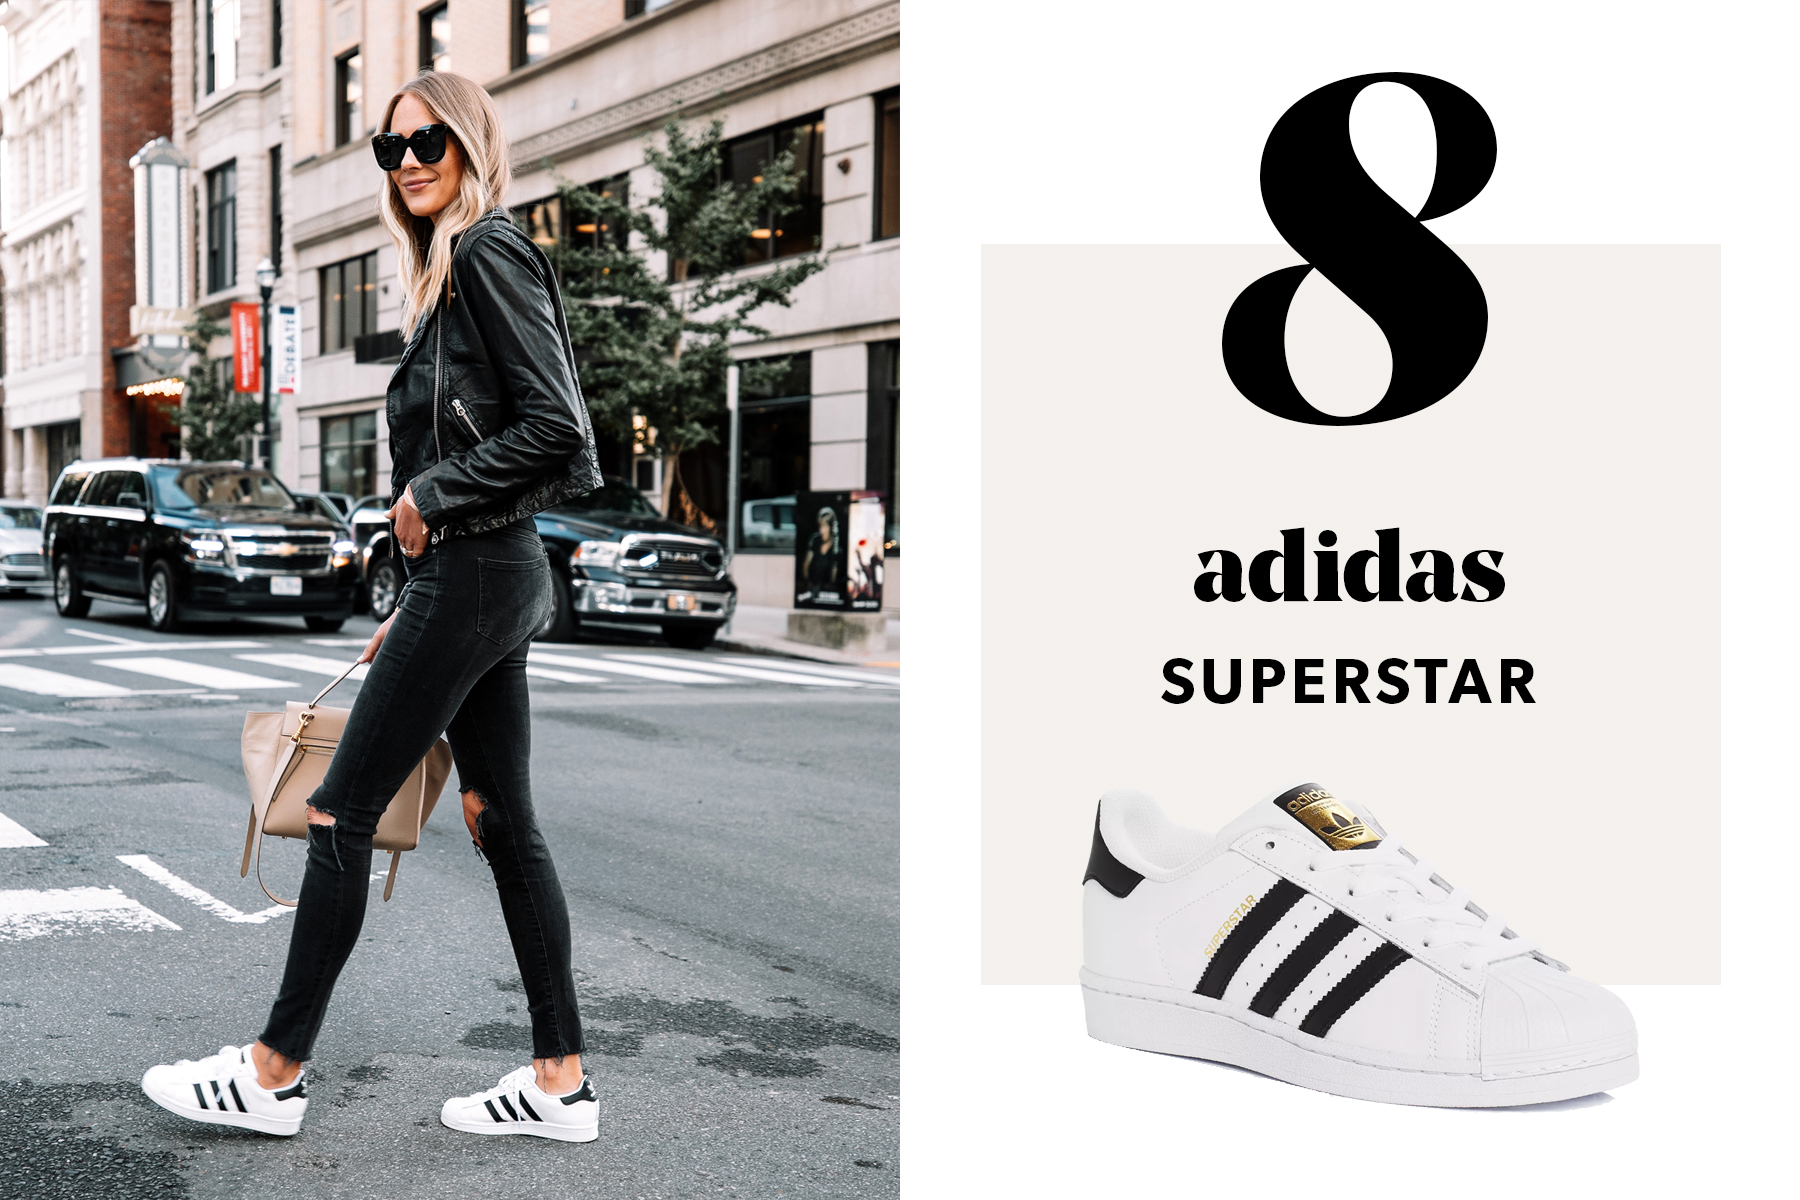 fashion jackson wearing adidas superstar sneakers outfit